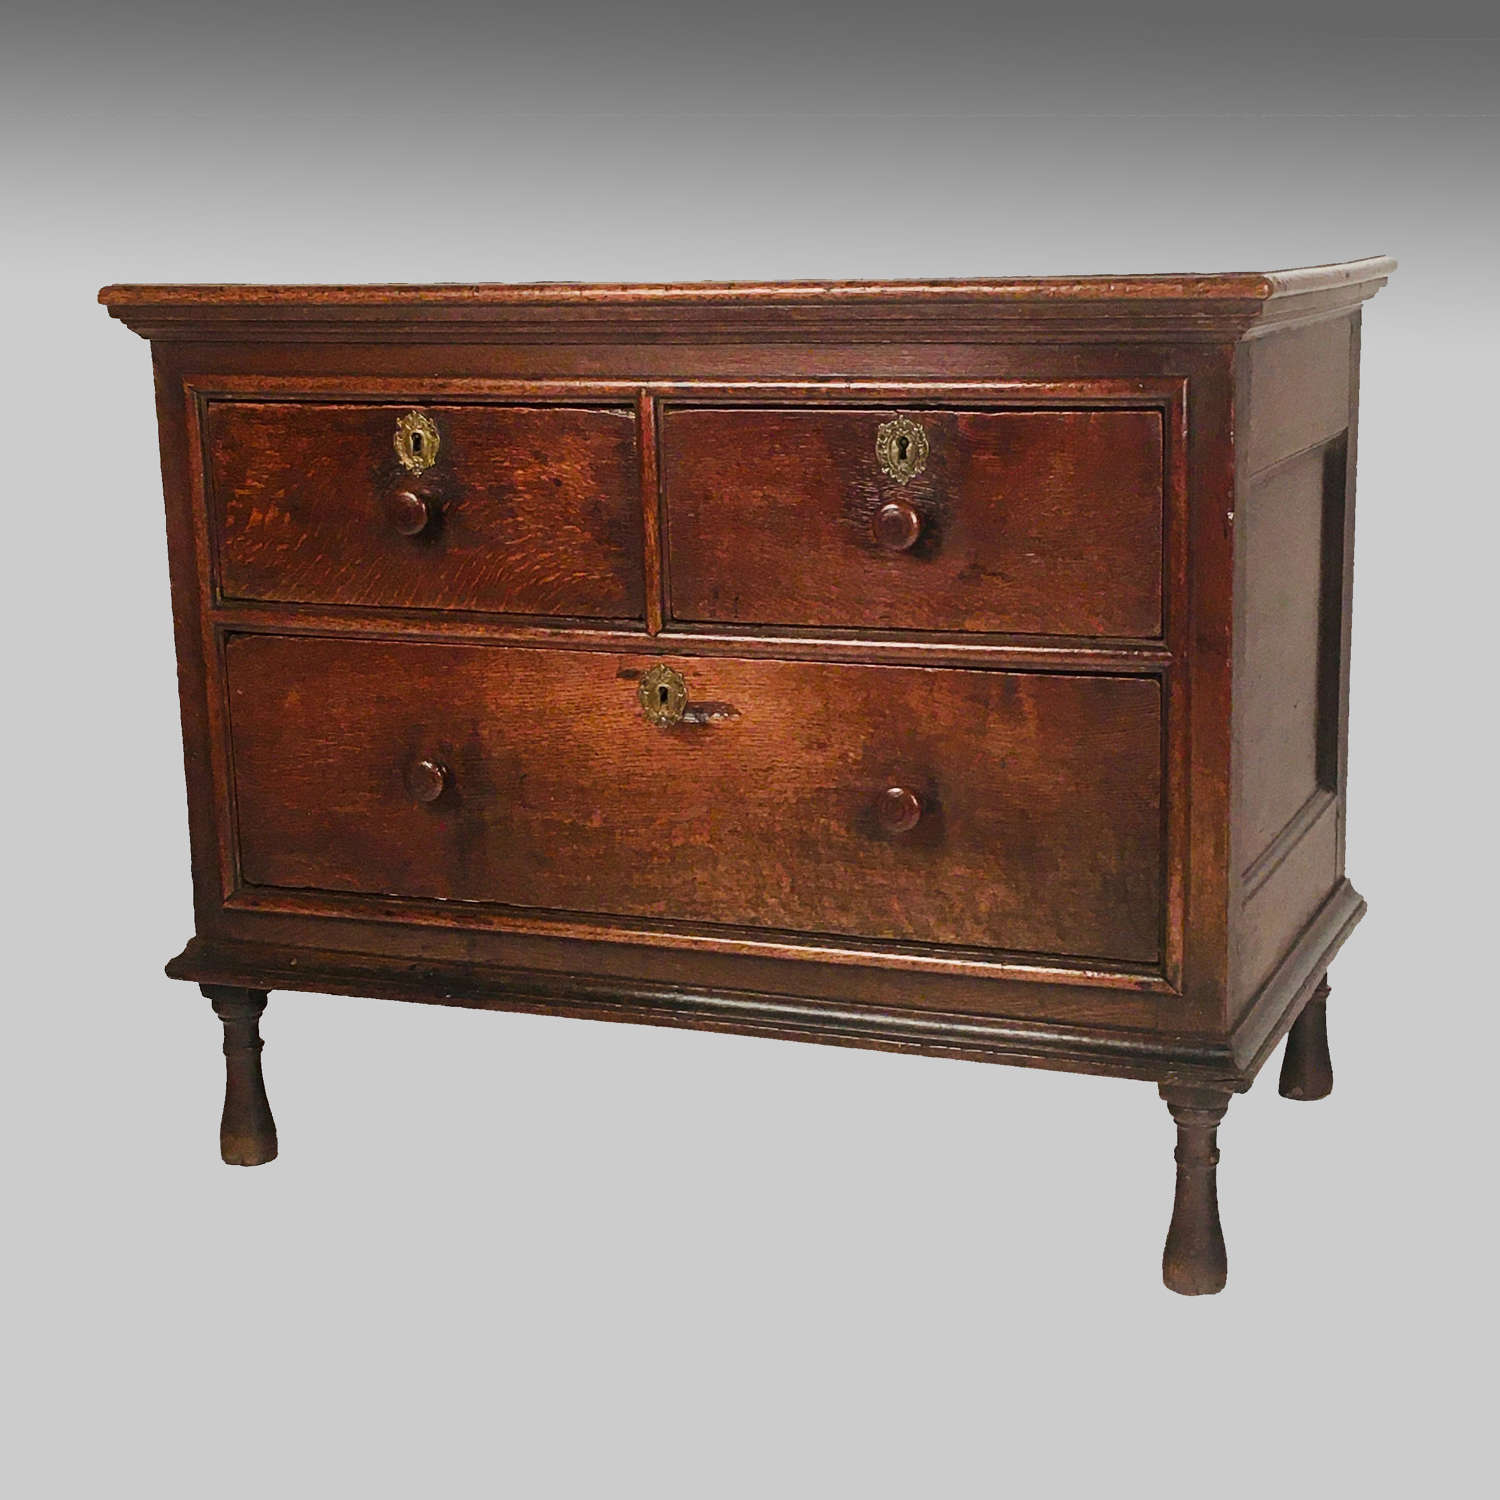 Late 17th century boarded and panelled oak chest